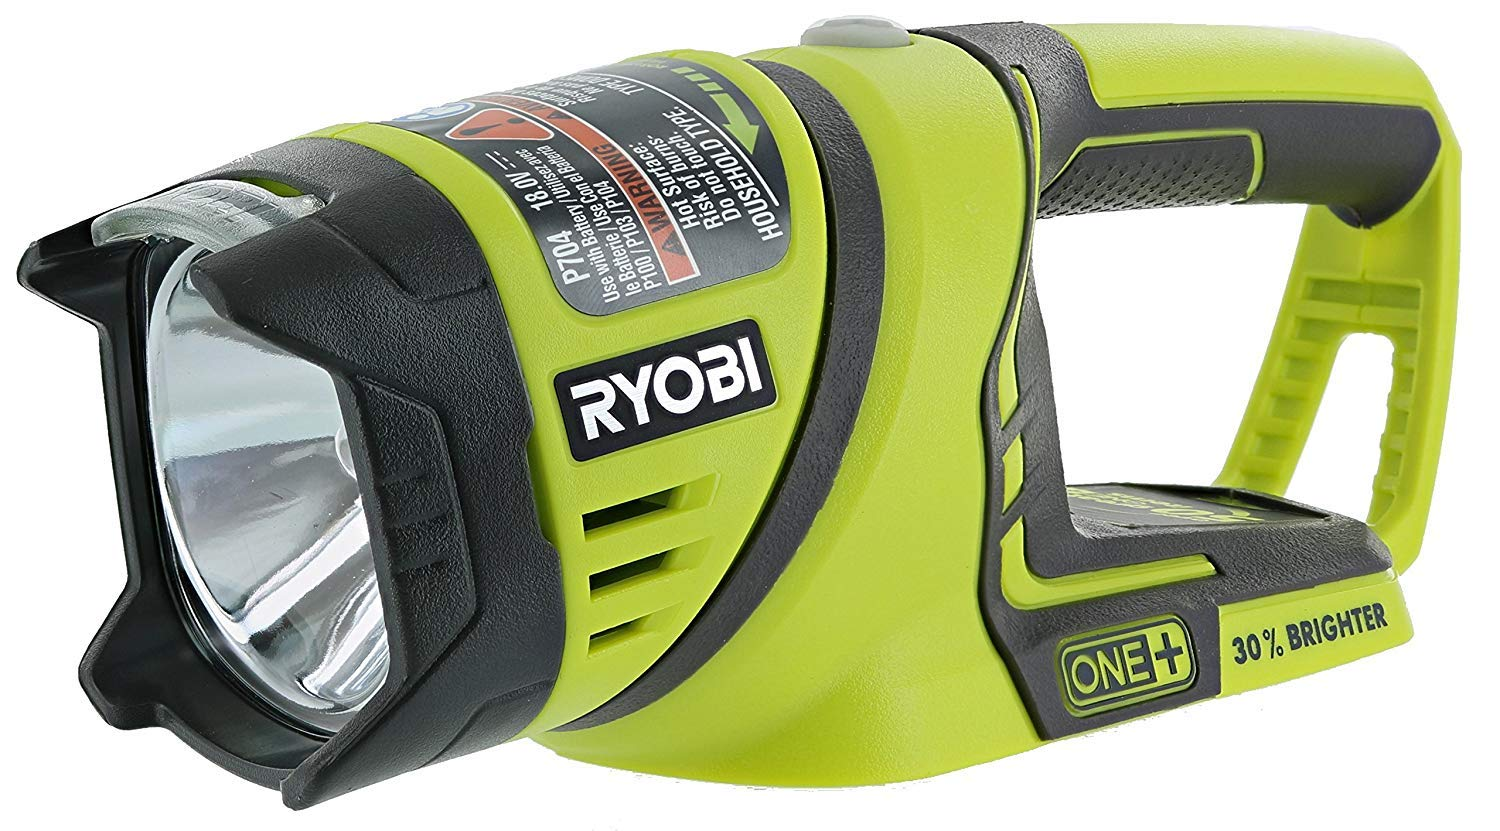 Ryobi One+ P704 18V Lithium Ion Cordless Flashlight w/Rotating Head (Batteries Not Included, Power Tool Only by Ryobi